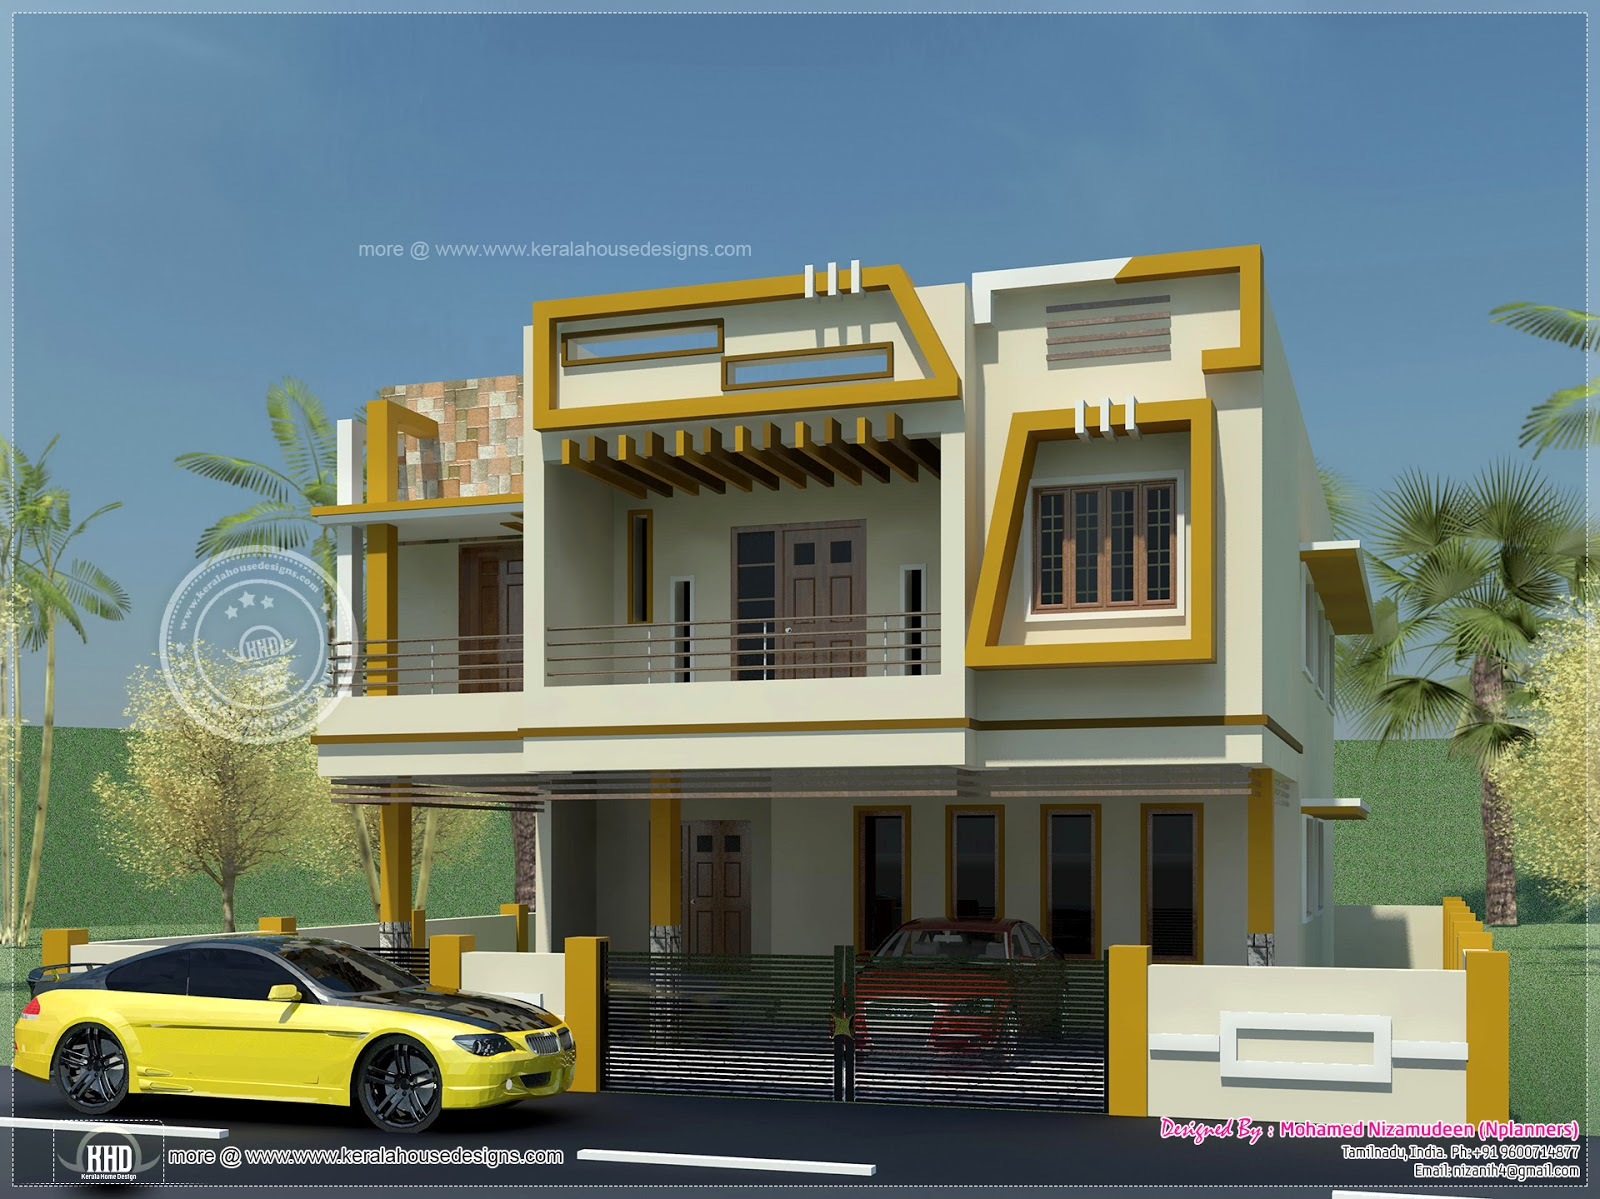 House plans and design modern house plans in tamilnadu for Tamil nadu house plan